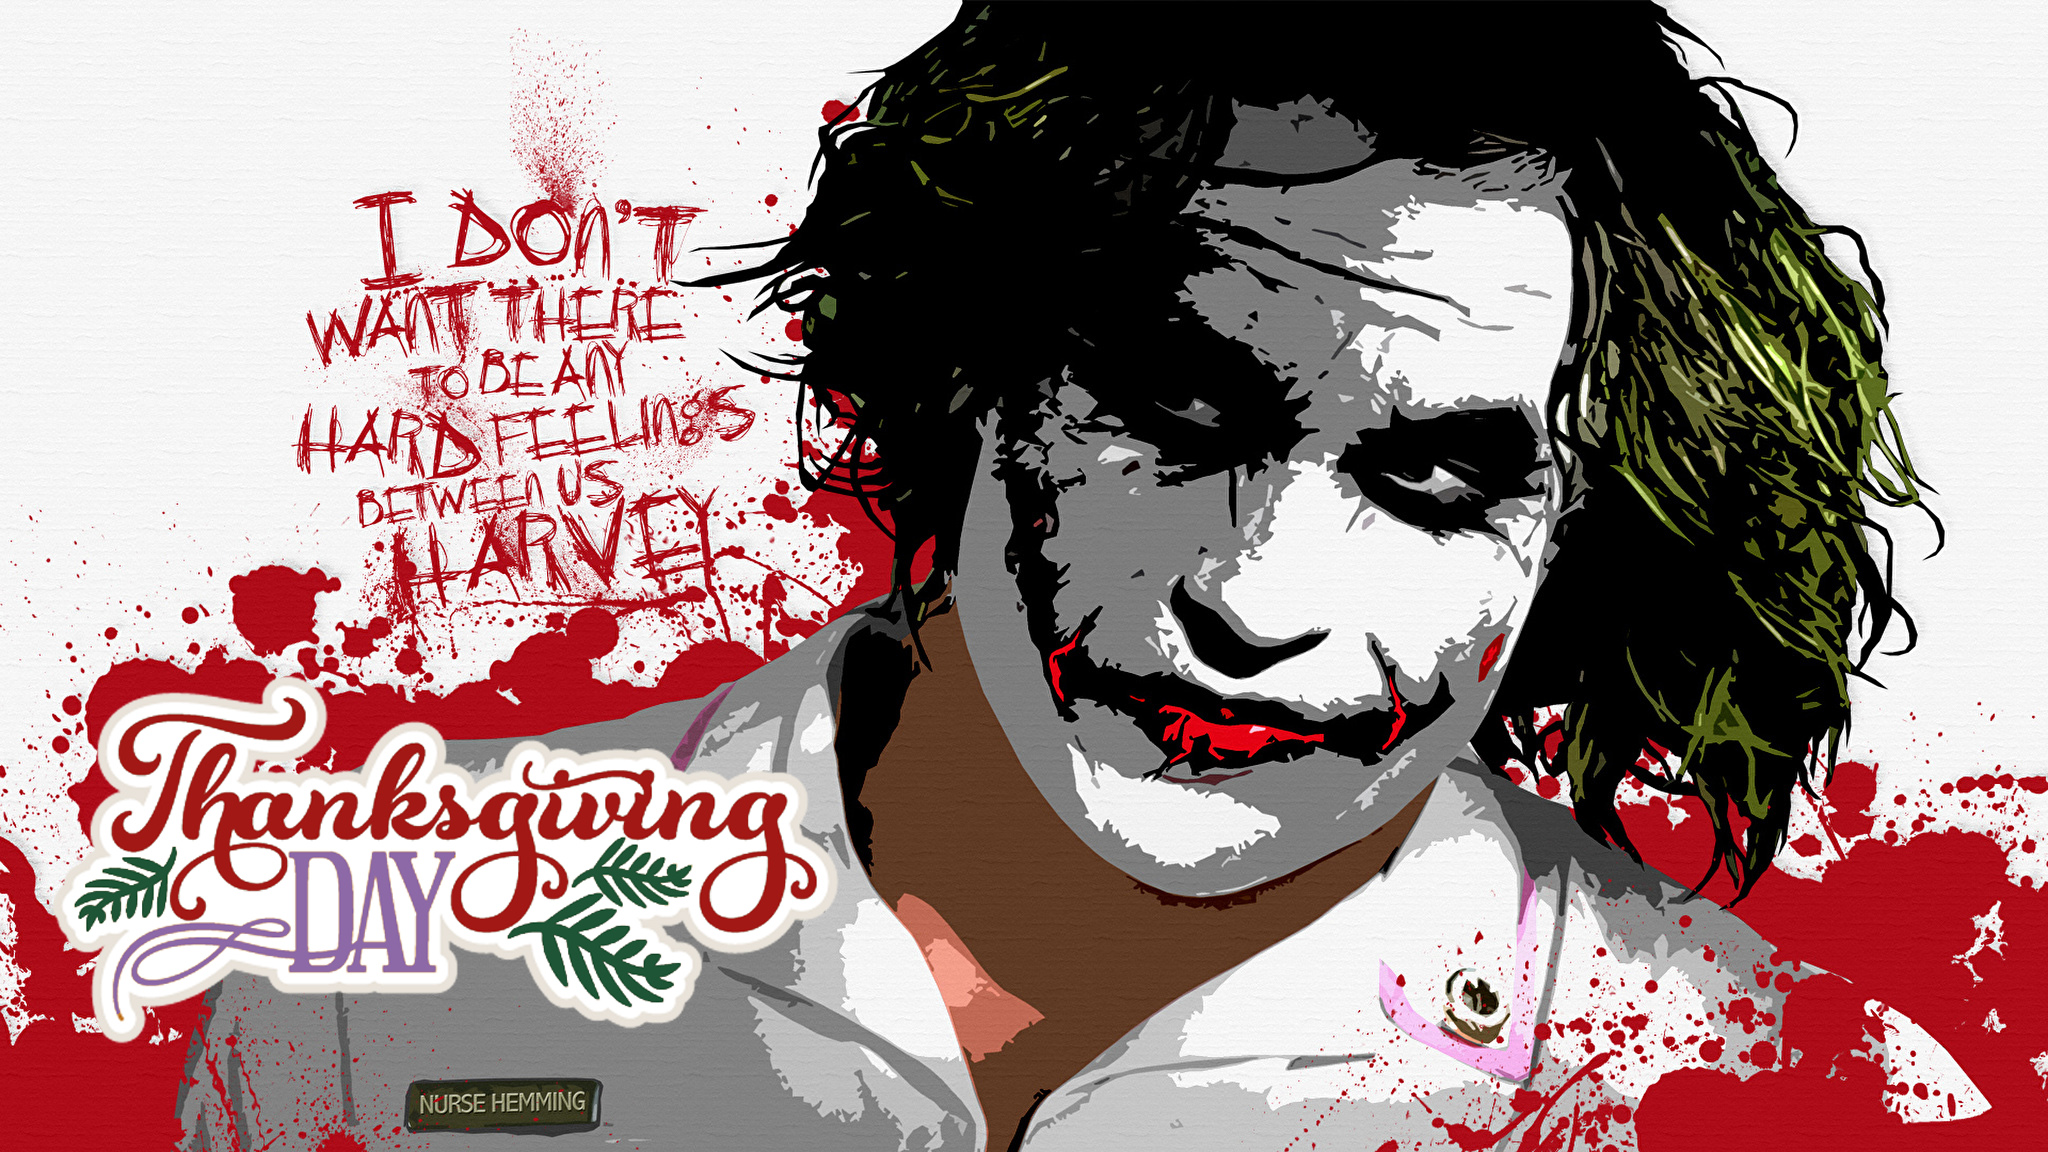 batman joker wishing happy thanksgiving day hd white pc wallpaper